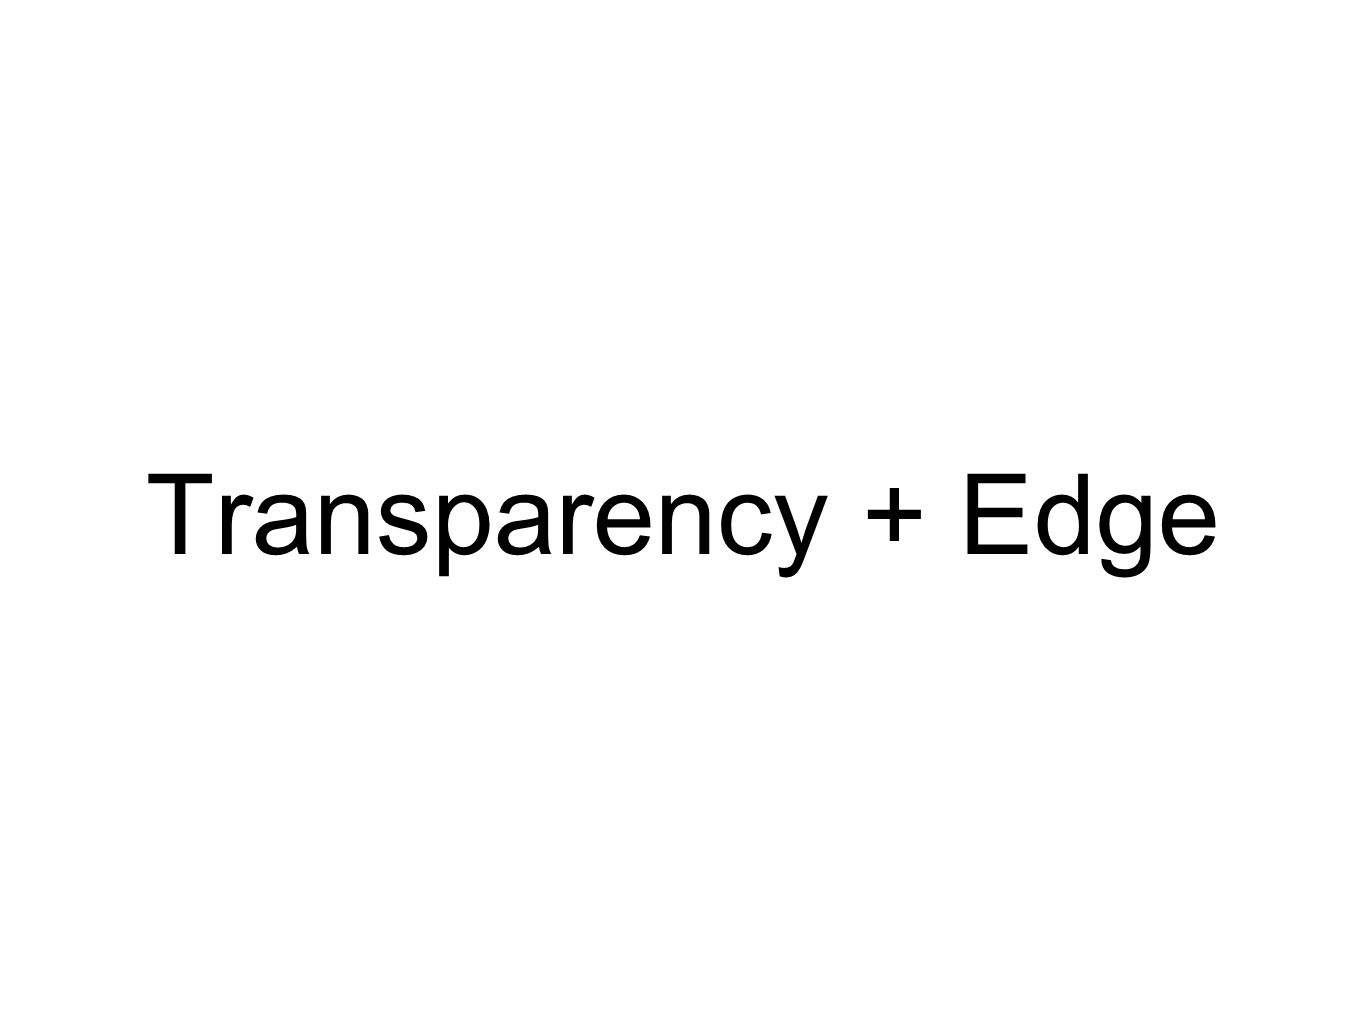 Transparency + Edge